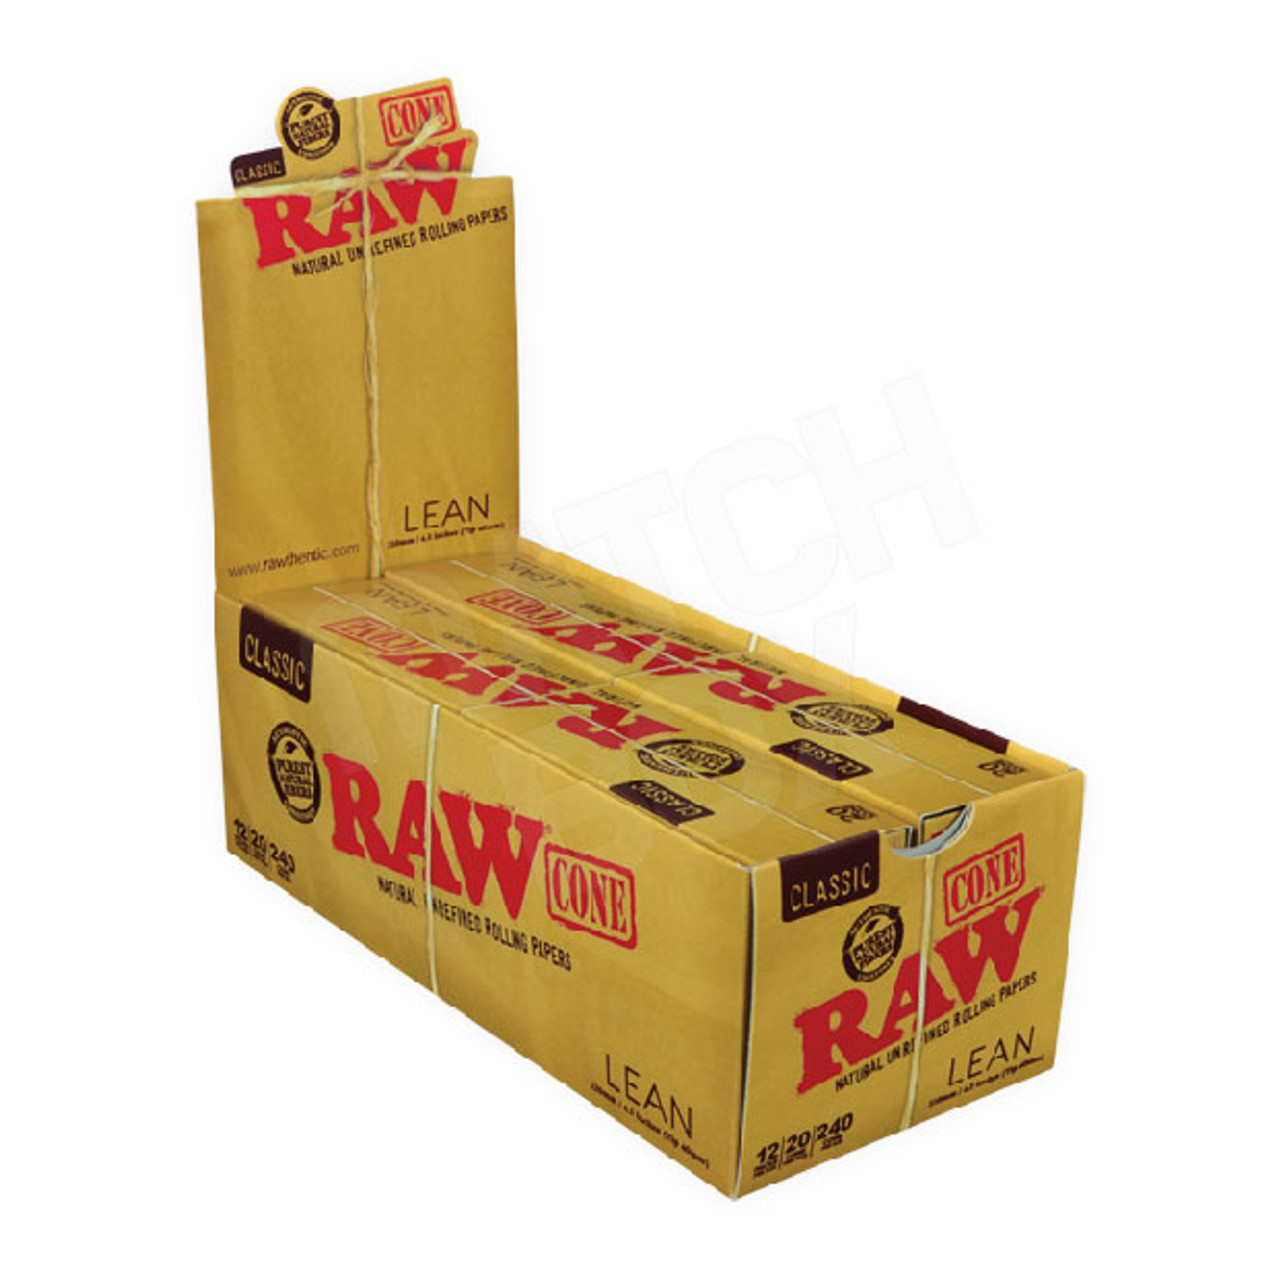 RAW CONE LEAN 20 CONES BOX